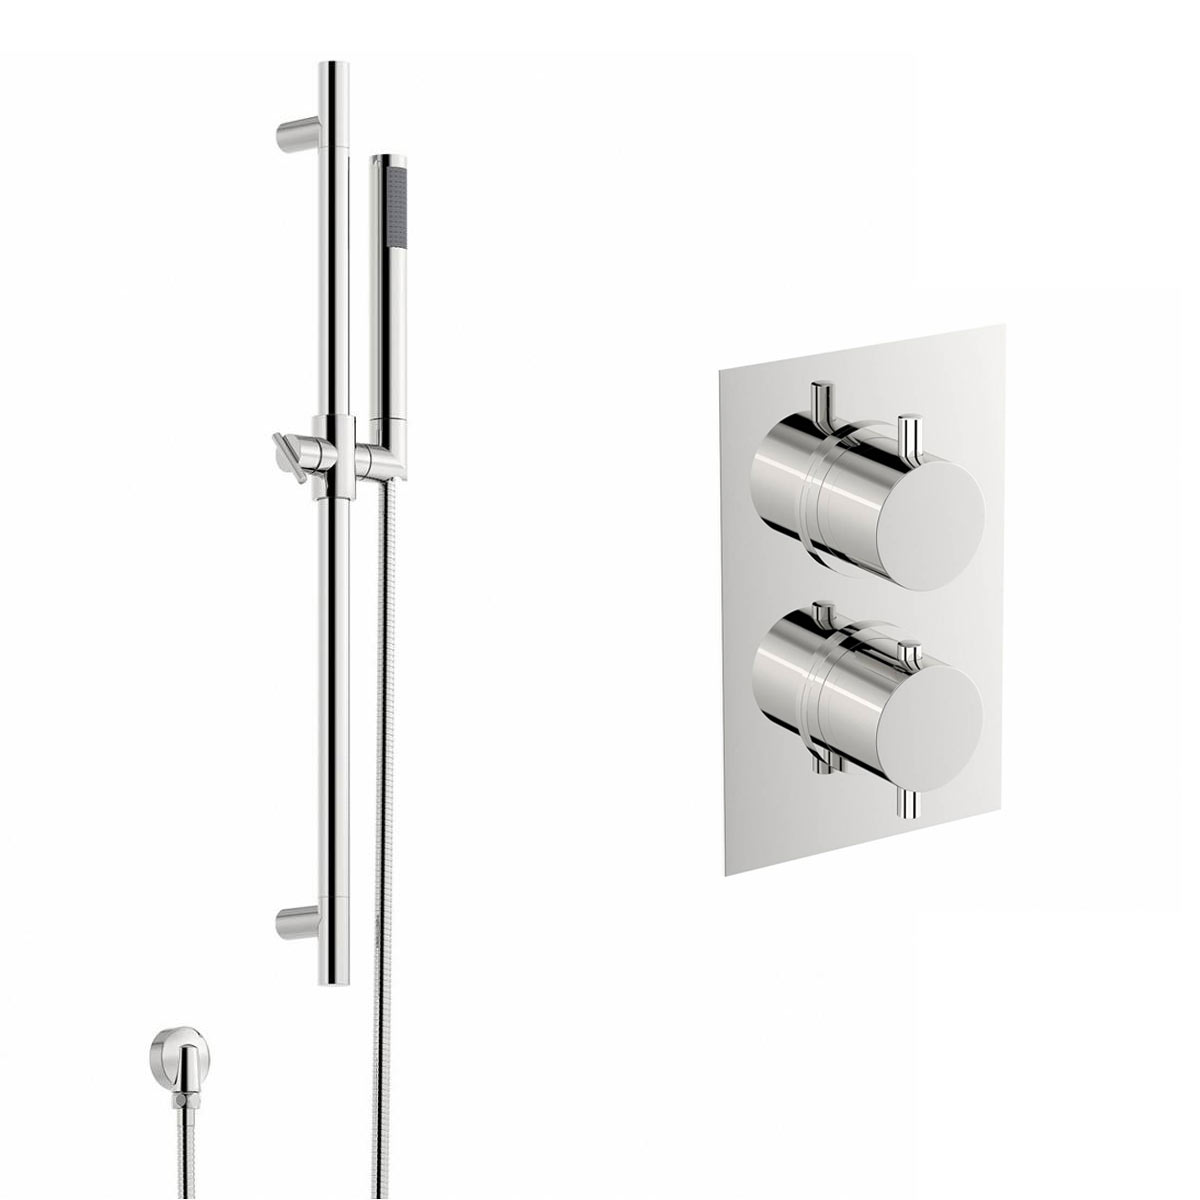 Image of Matrix Thermostatic Twin Valve and Riser Rail Set